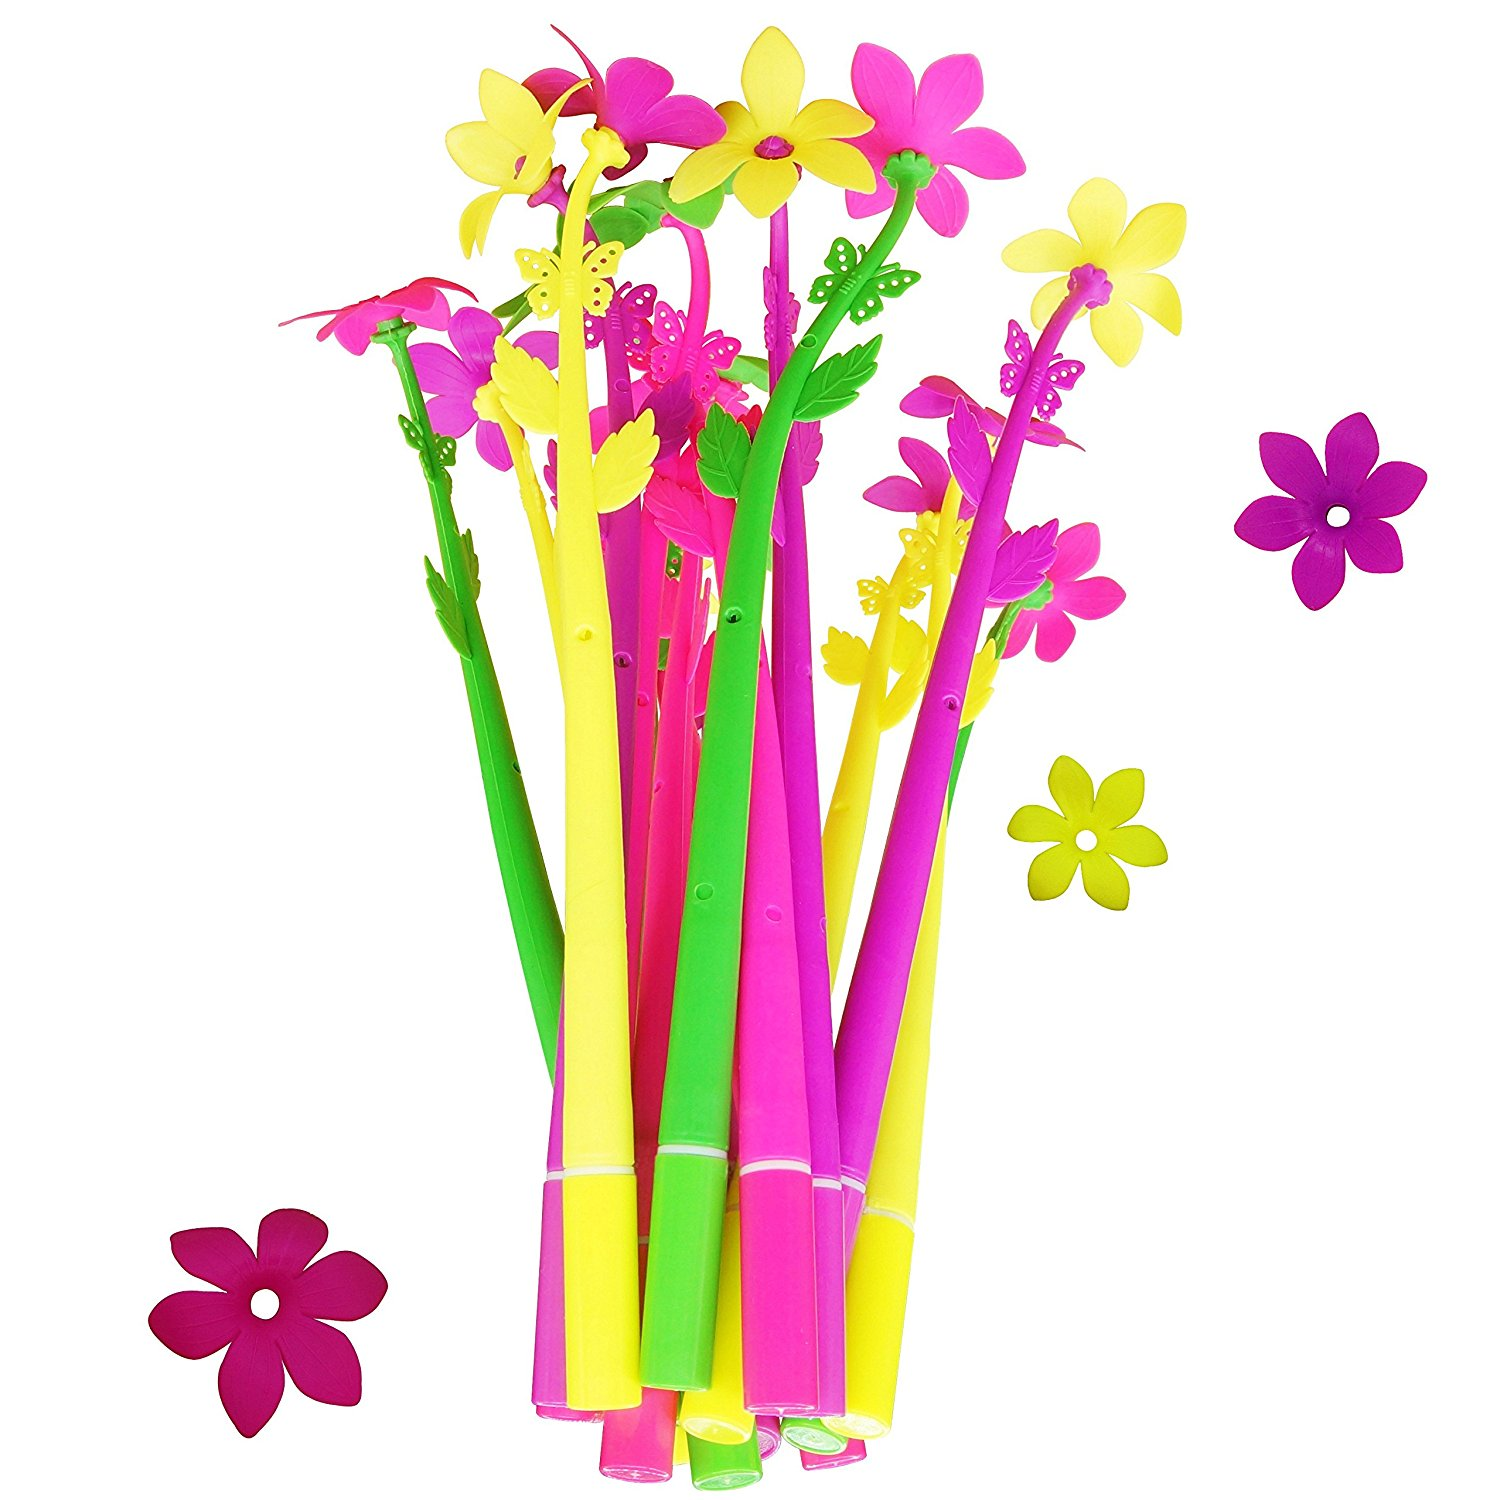 BUOP Zephyranthes Flower Style Ball-point Pen, Extra Fine Black Gel Ink Pen, Assorted Color Flower Pen, Creative Stationery Gift, Dozen (12pcs) Box